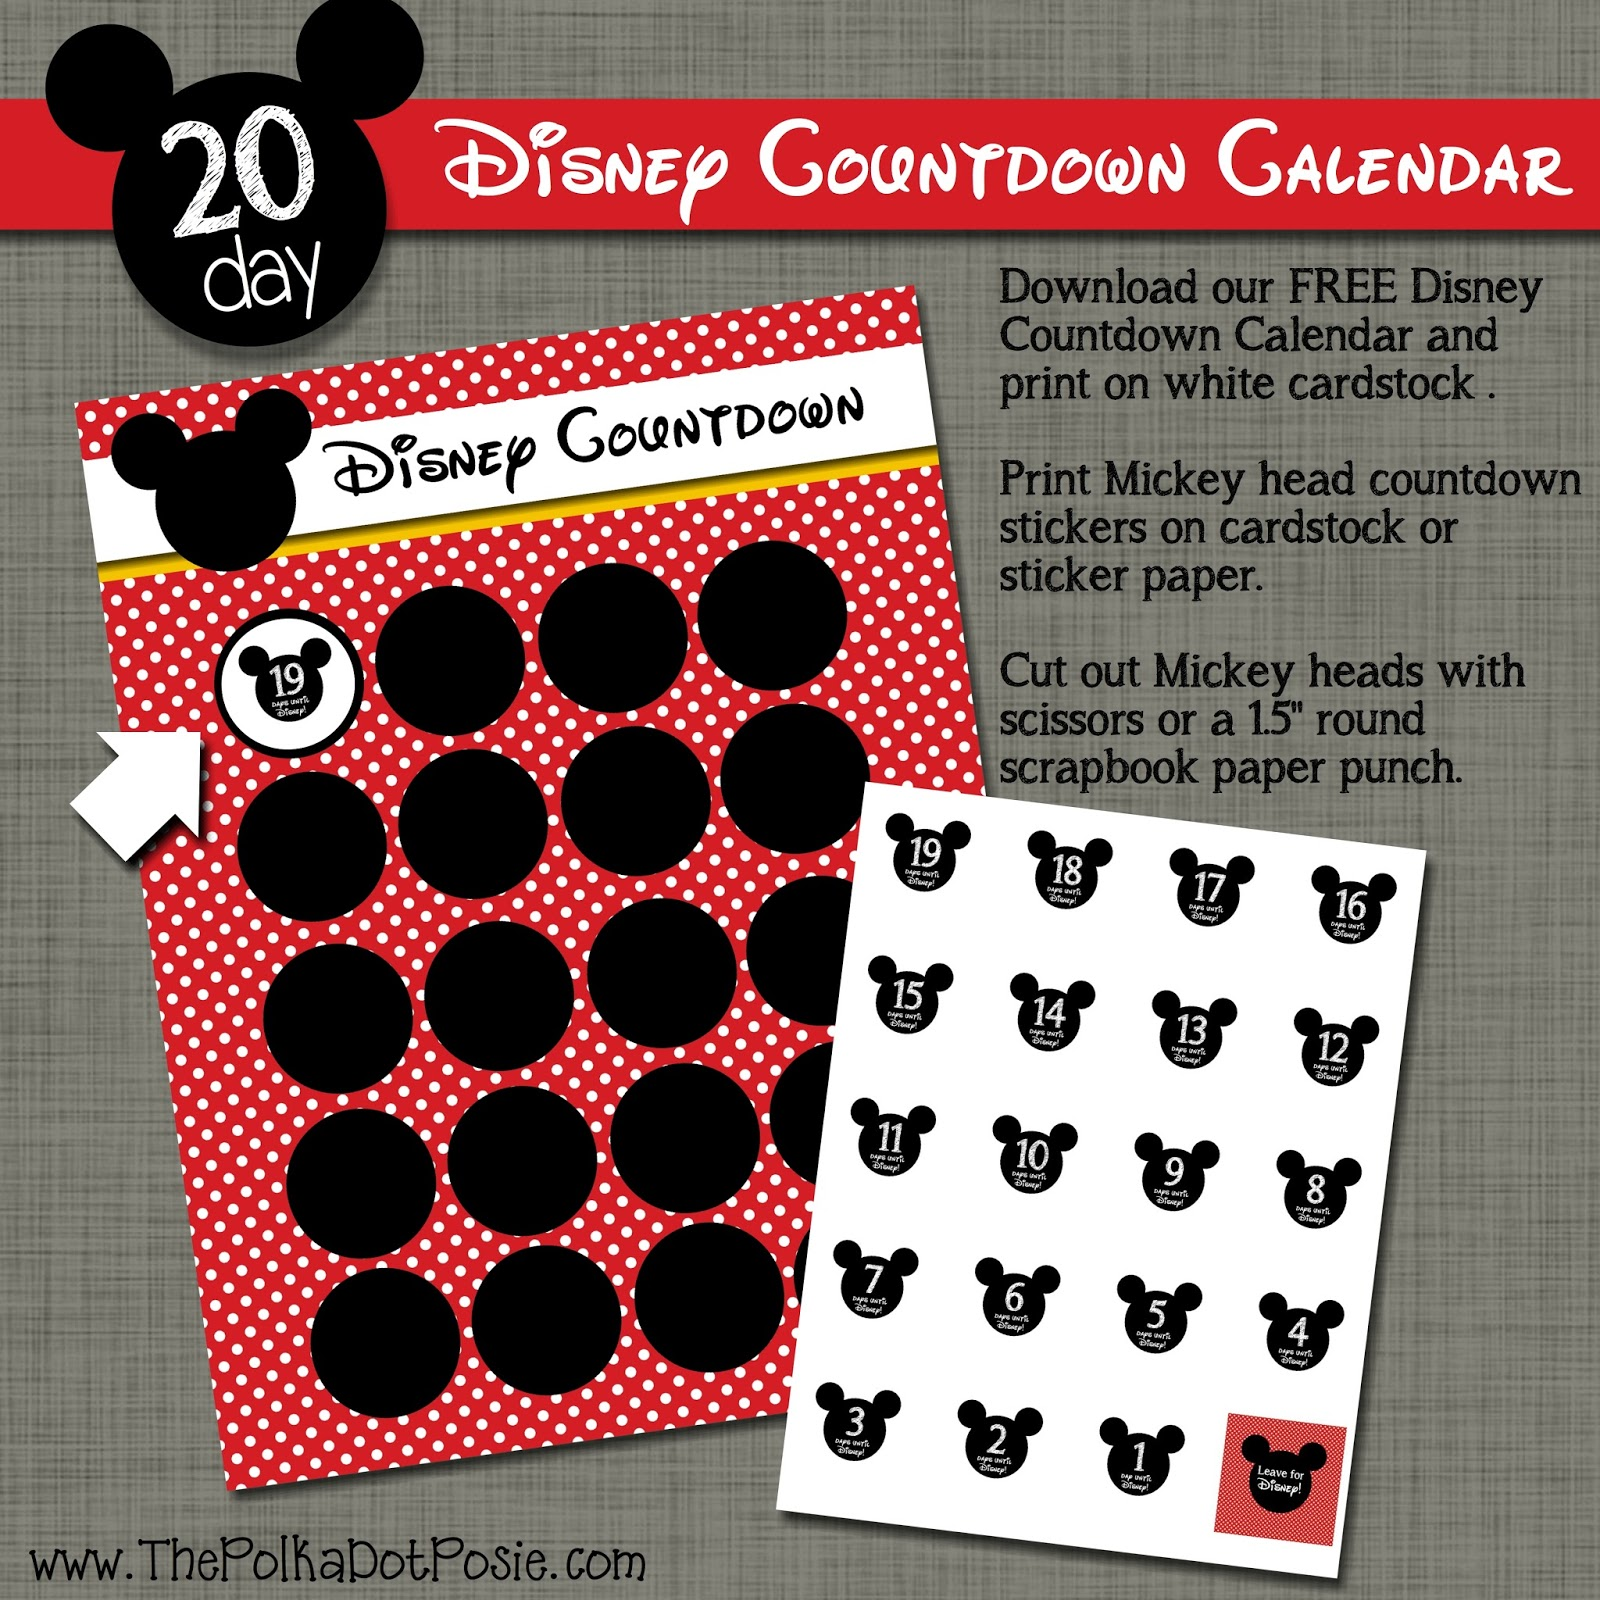 picture relating to Disney Countdown Calendar Printable named The Polka Dot Posie: Totally free Disney Countdown Sticker Calendar